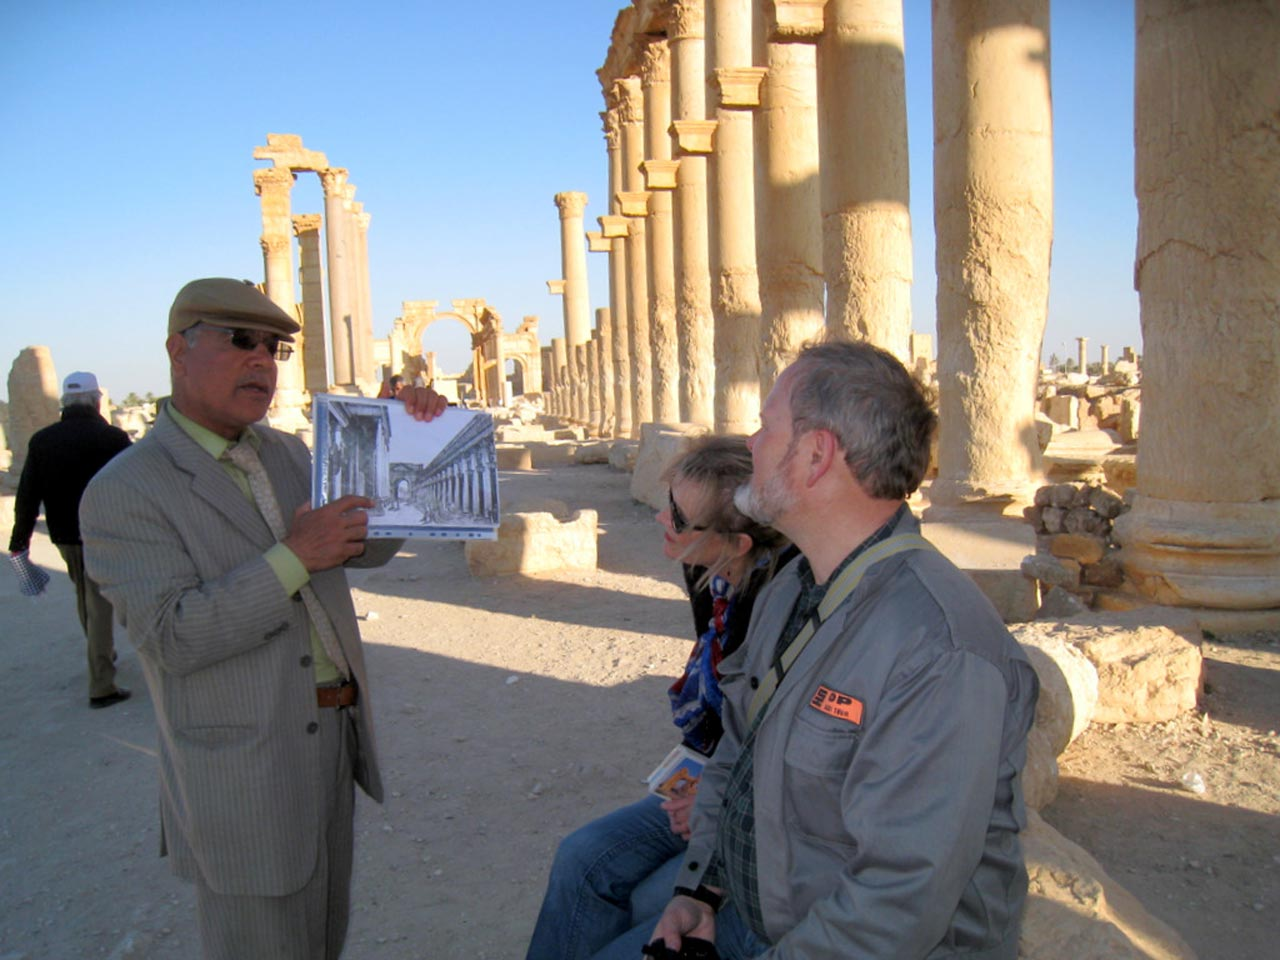 The guide explains how Palmyra looked in its heyday. © Mark Lowey 2021. All rights reserved.